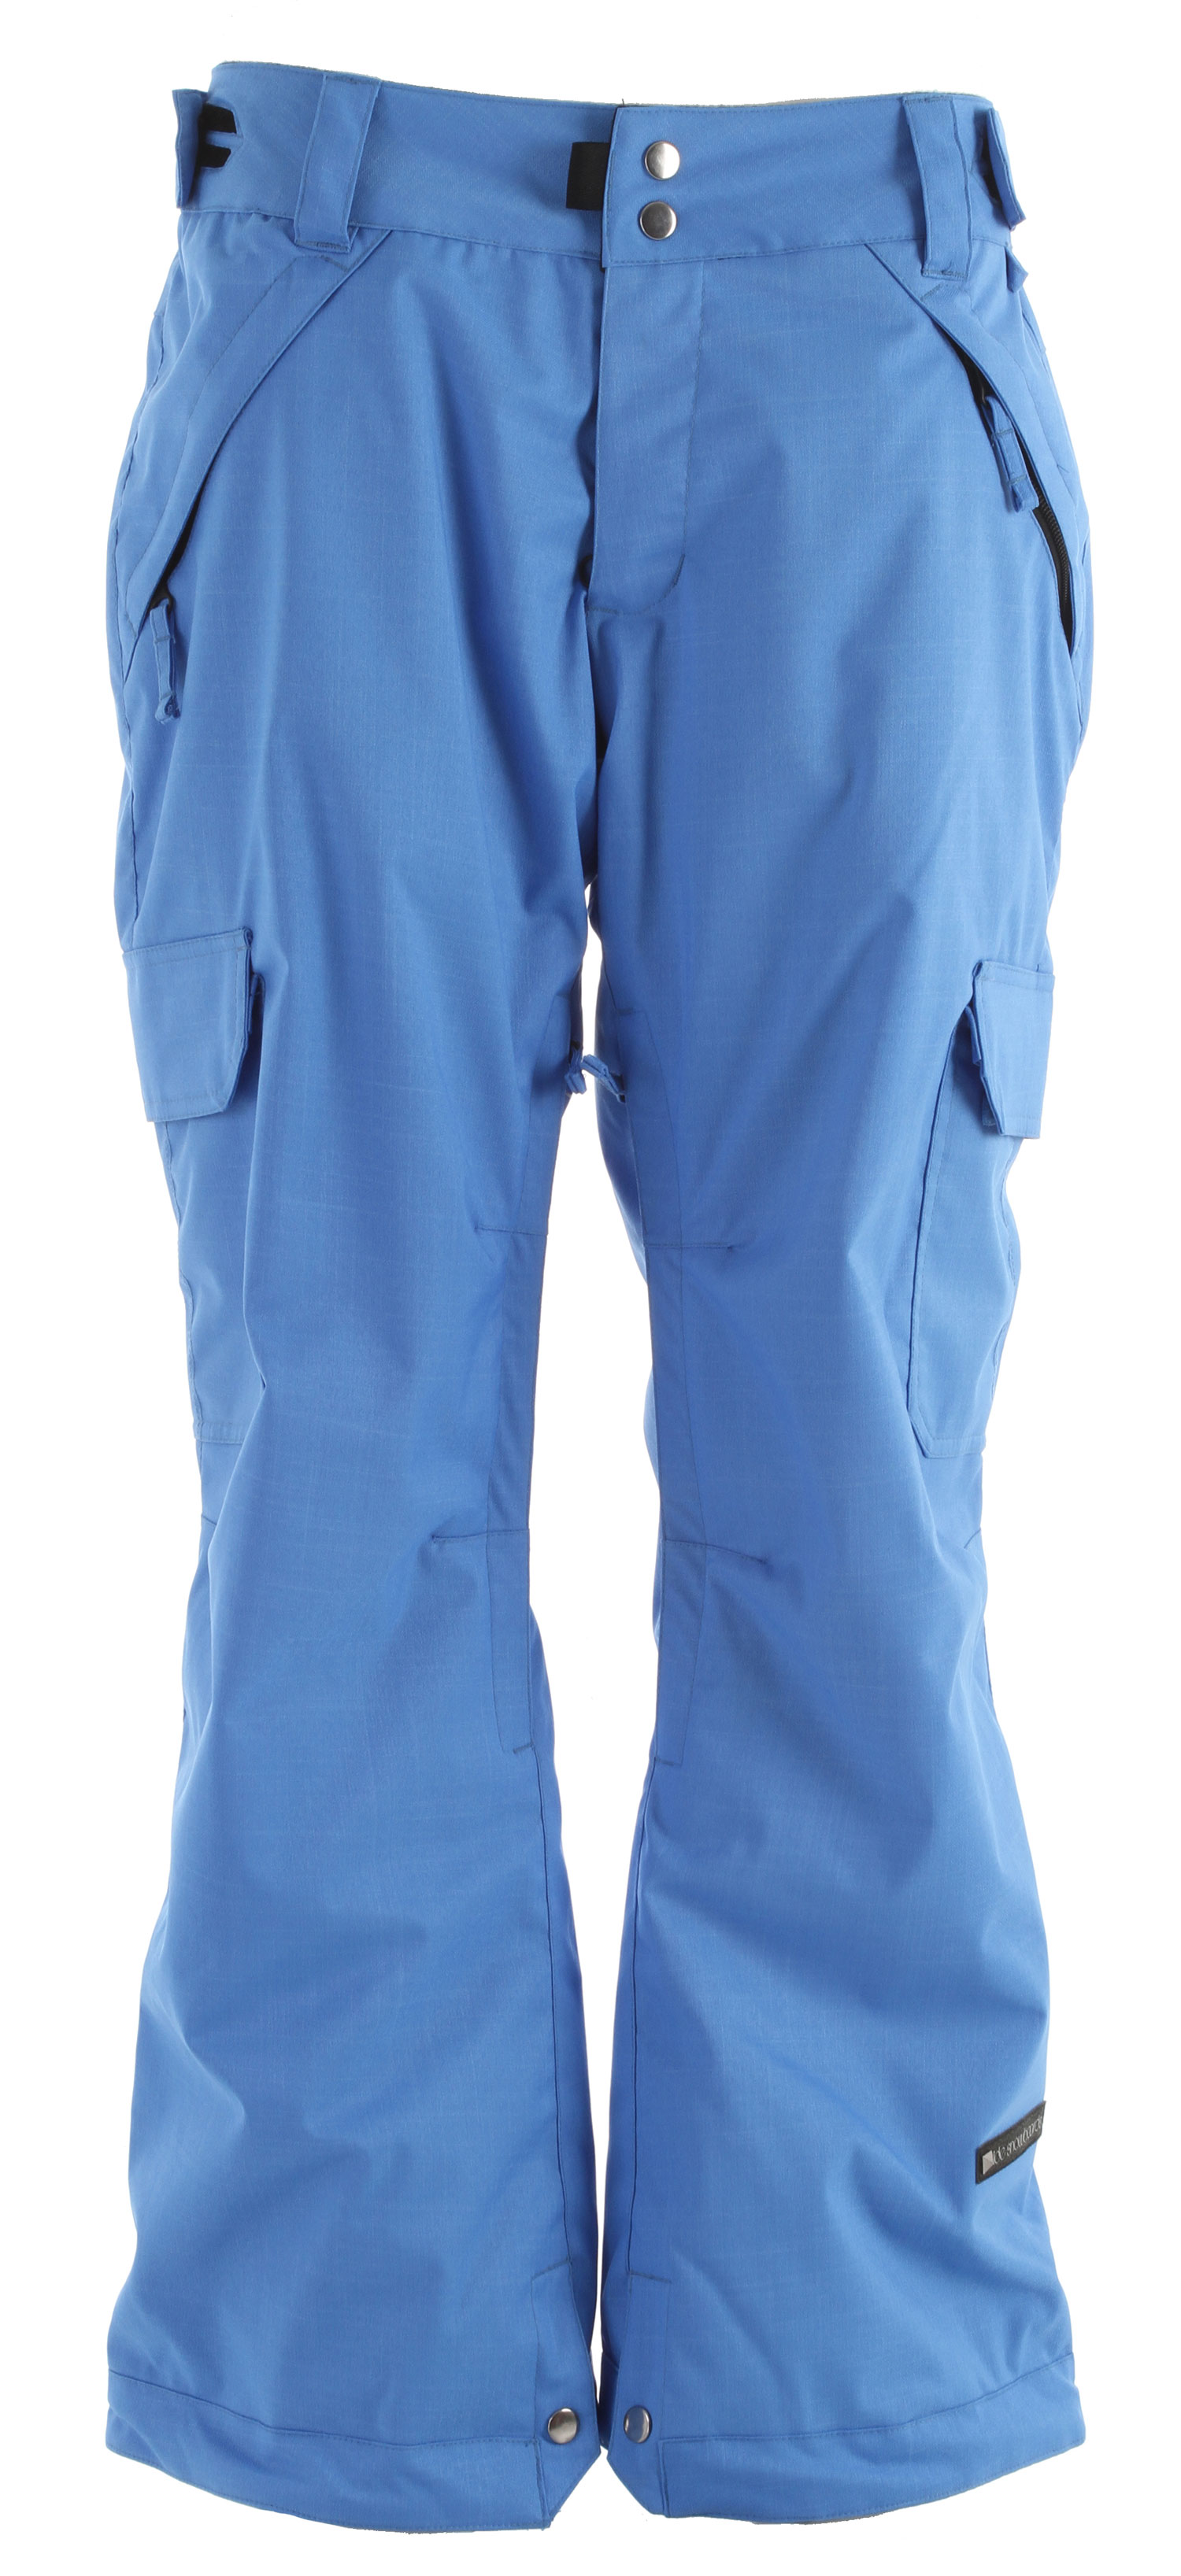 Snowboard Ride Highland Insulated Snowboard Pants - $70.39